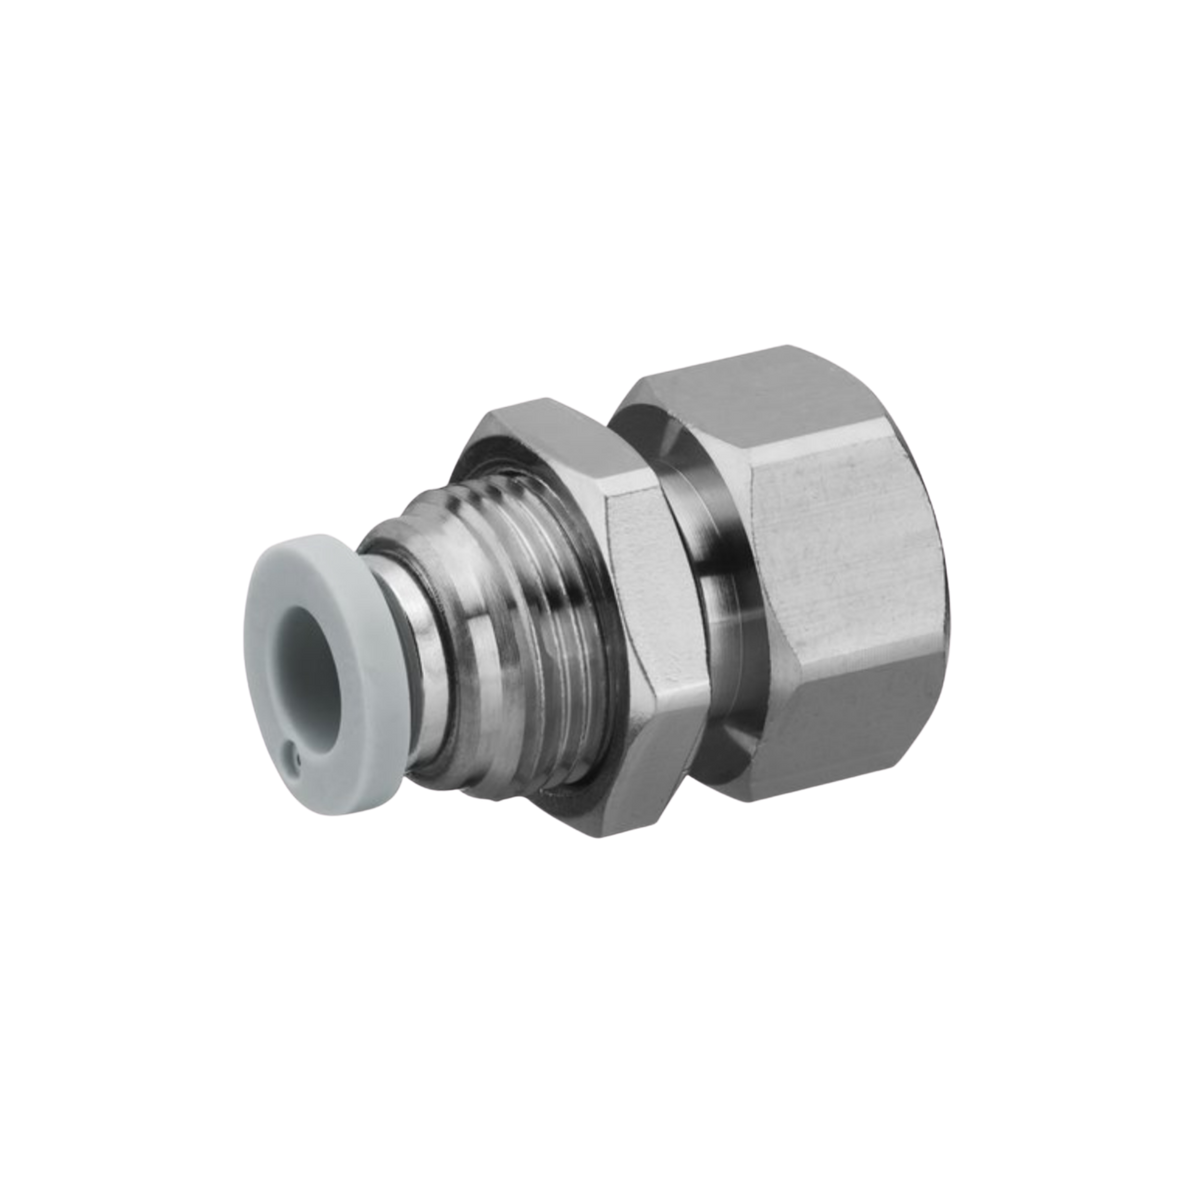 Staright metal hex shaped bulkhead connector. female push in fitting with internal thread.